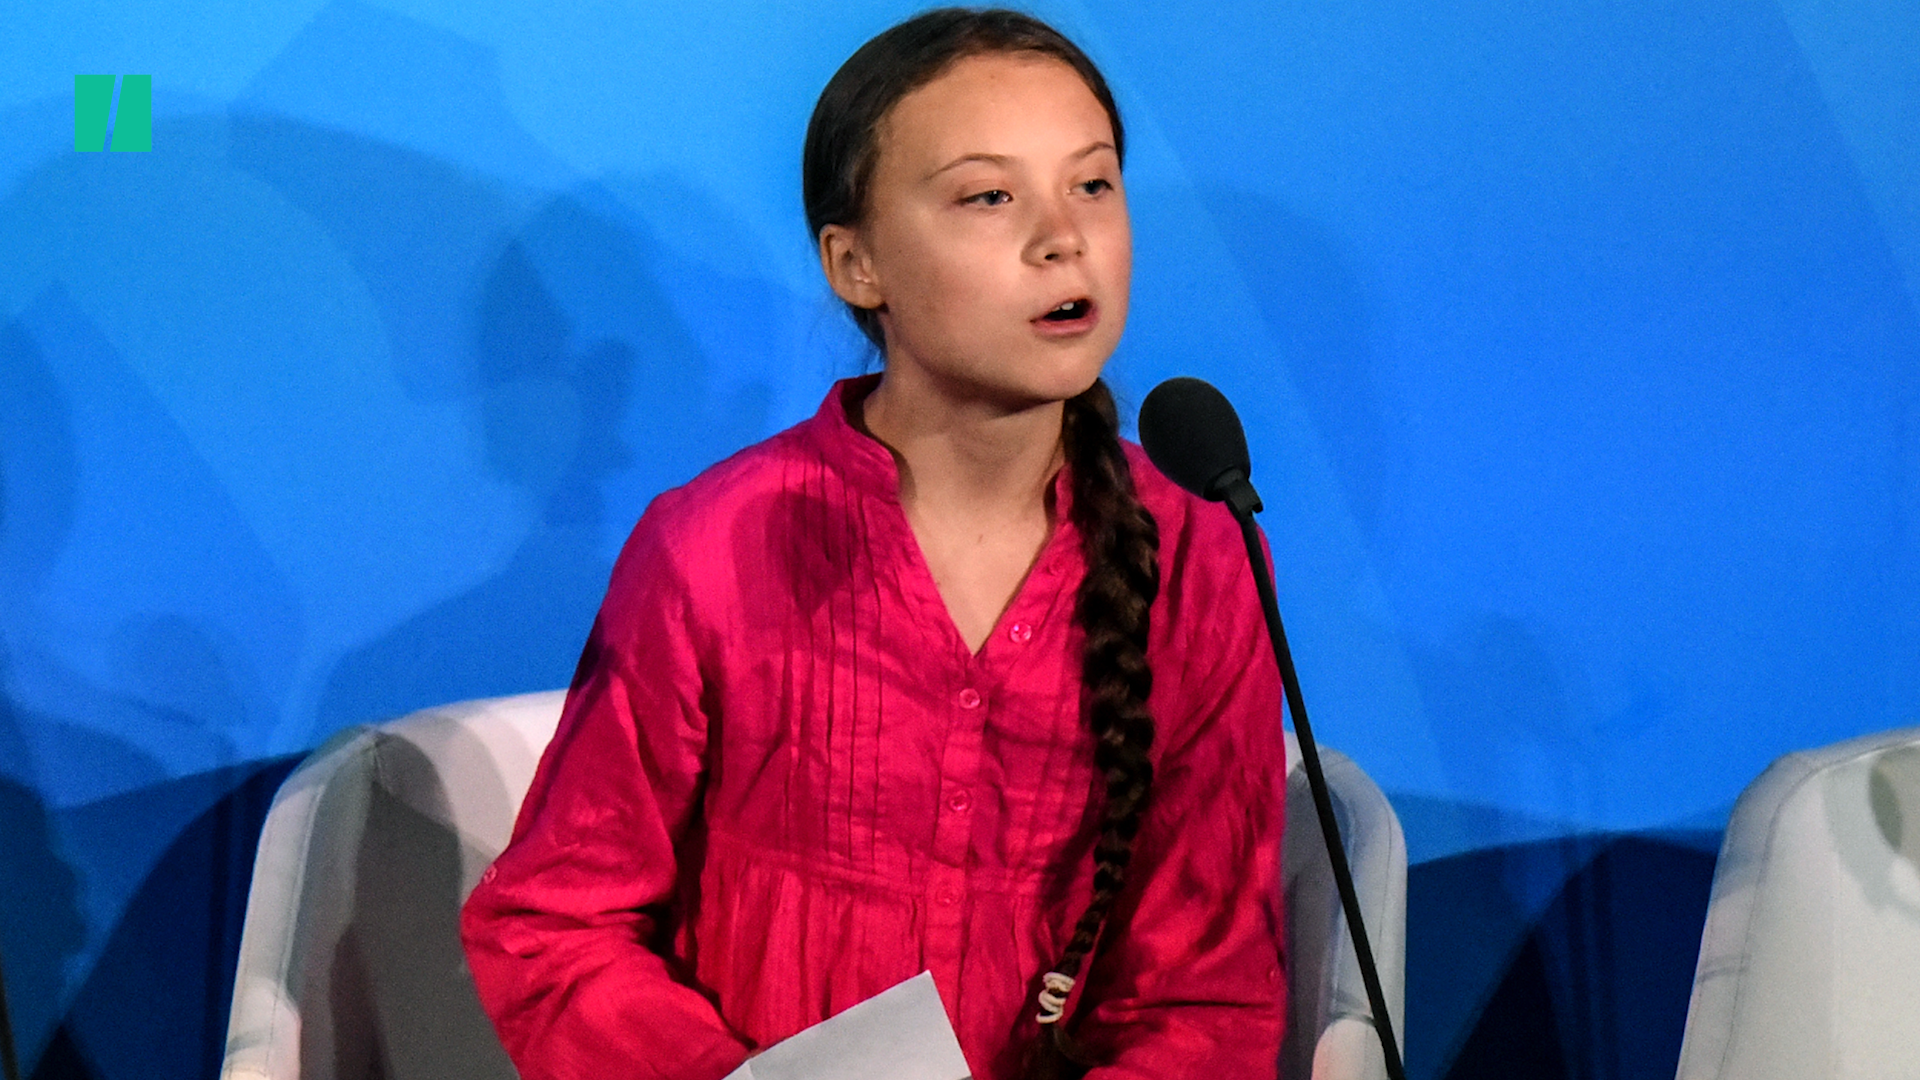 Greta Thunberg To World Leaders At UN: 'You've Stolen My Childhood And Dreams'